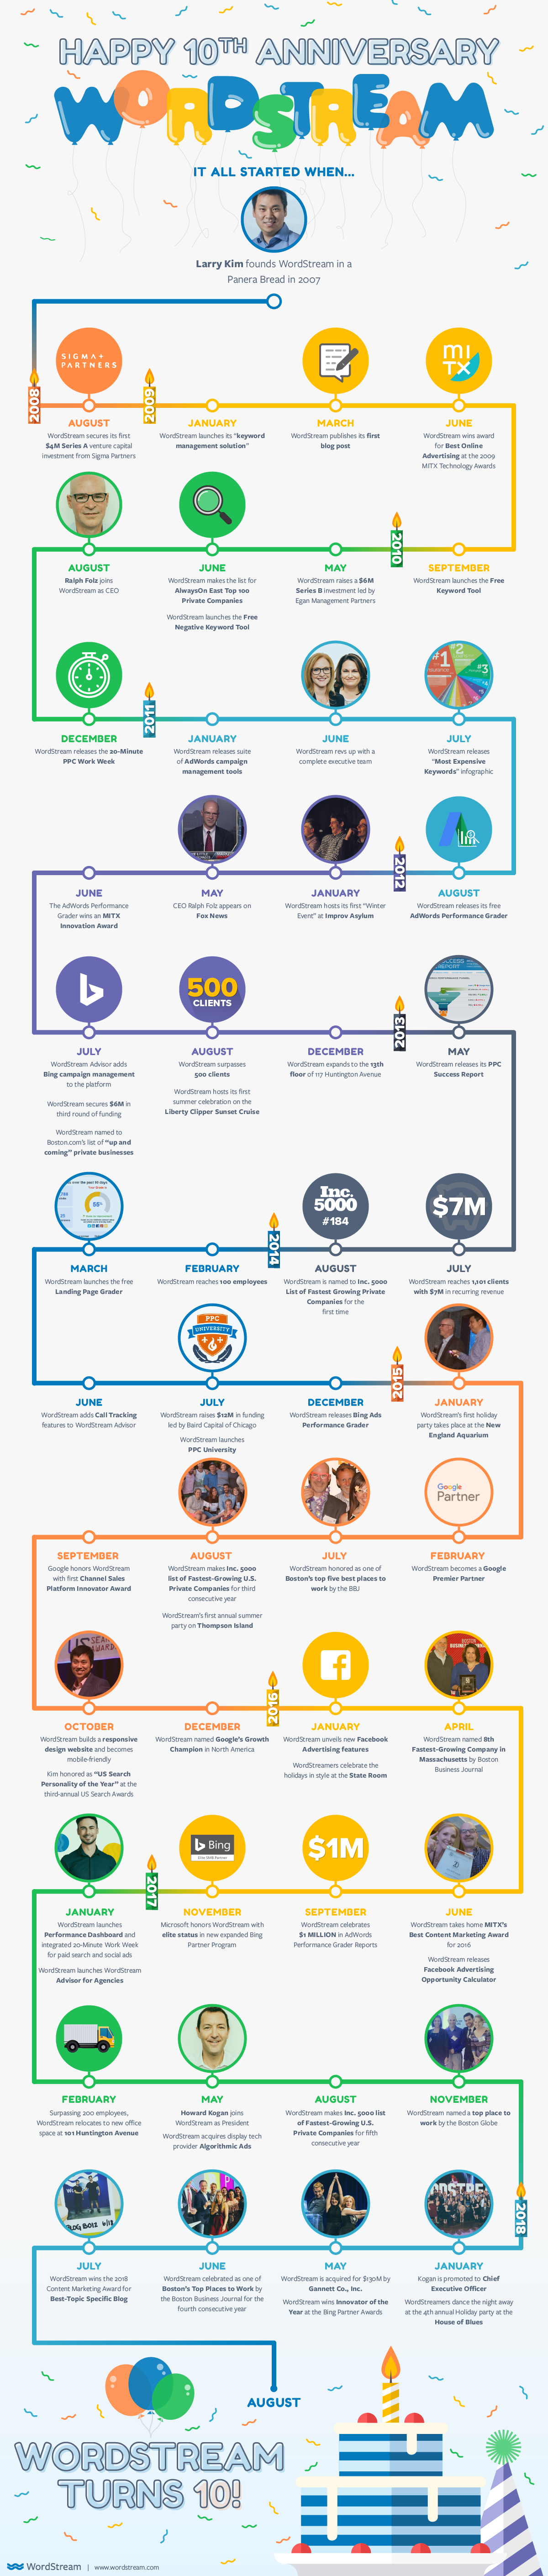 wordstream anniversary infographic